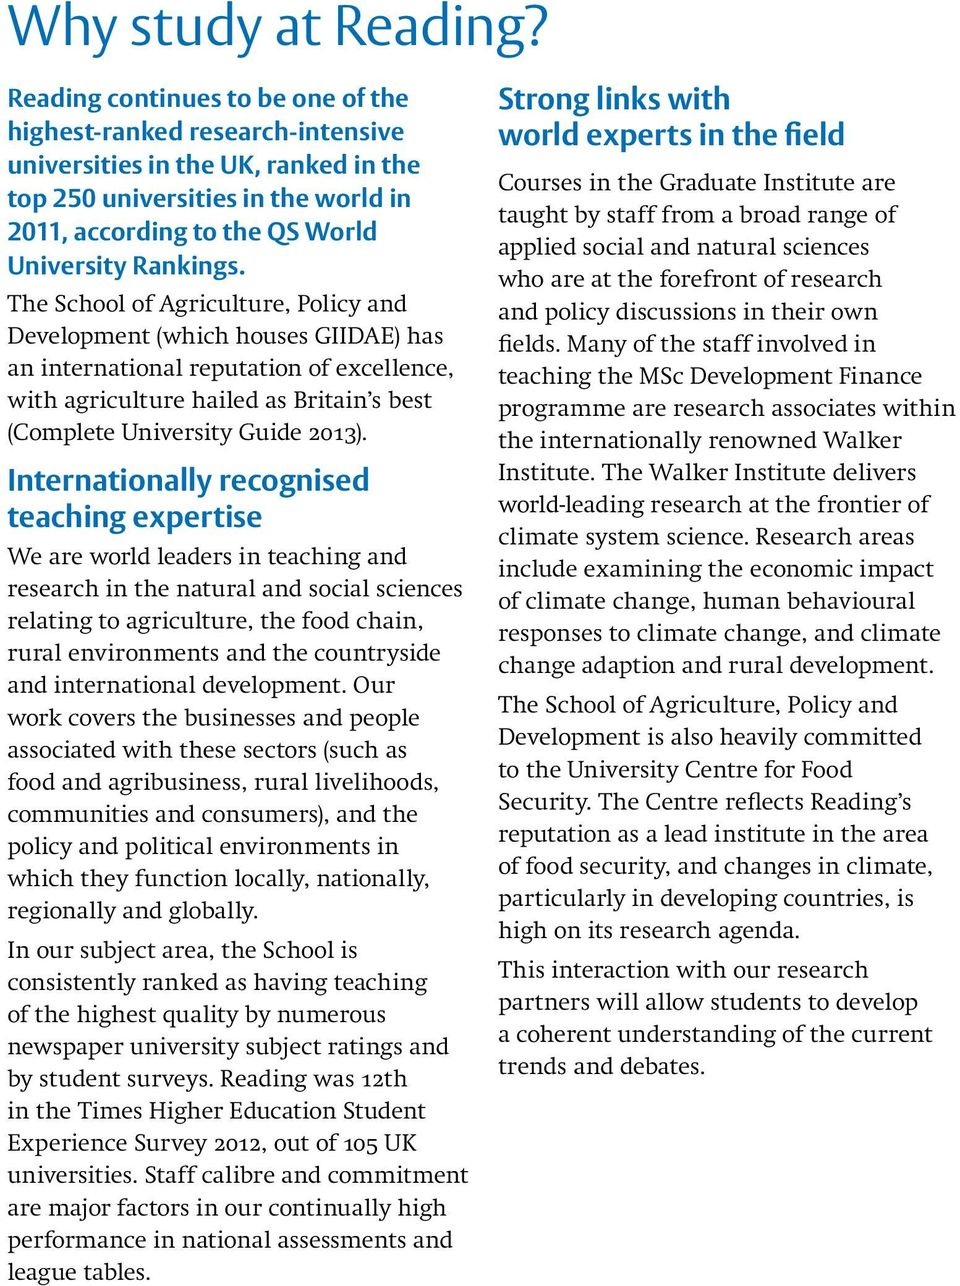 The School of Agriculture, Policy and Development (which houses GIIDAE) has an international reputation of excellence, with agriculture hailed as Britain s best (Complete University Guide 2013).